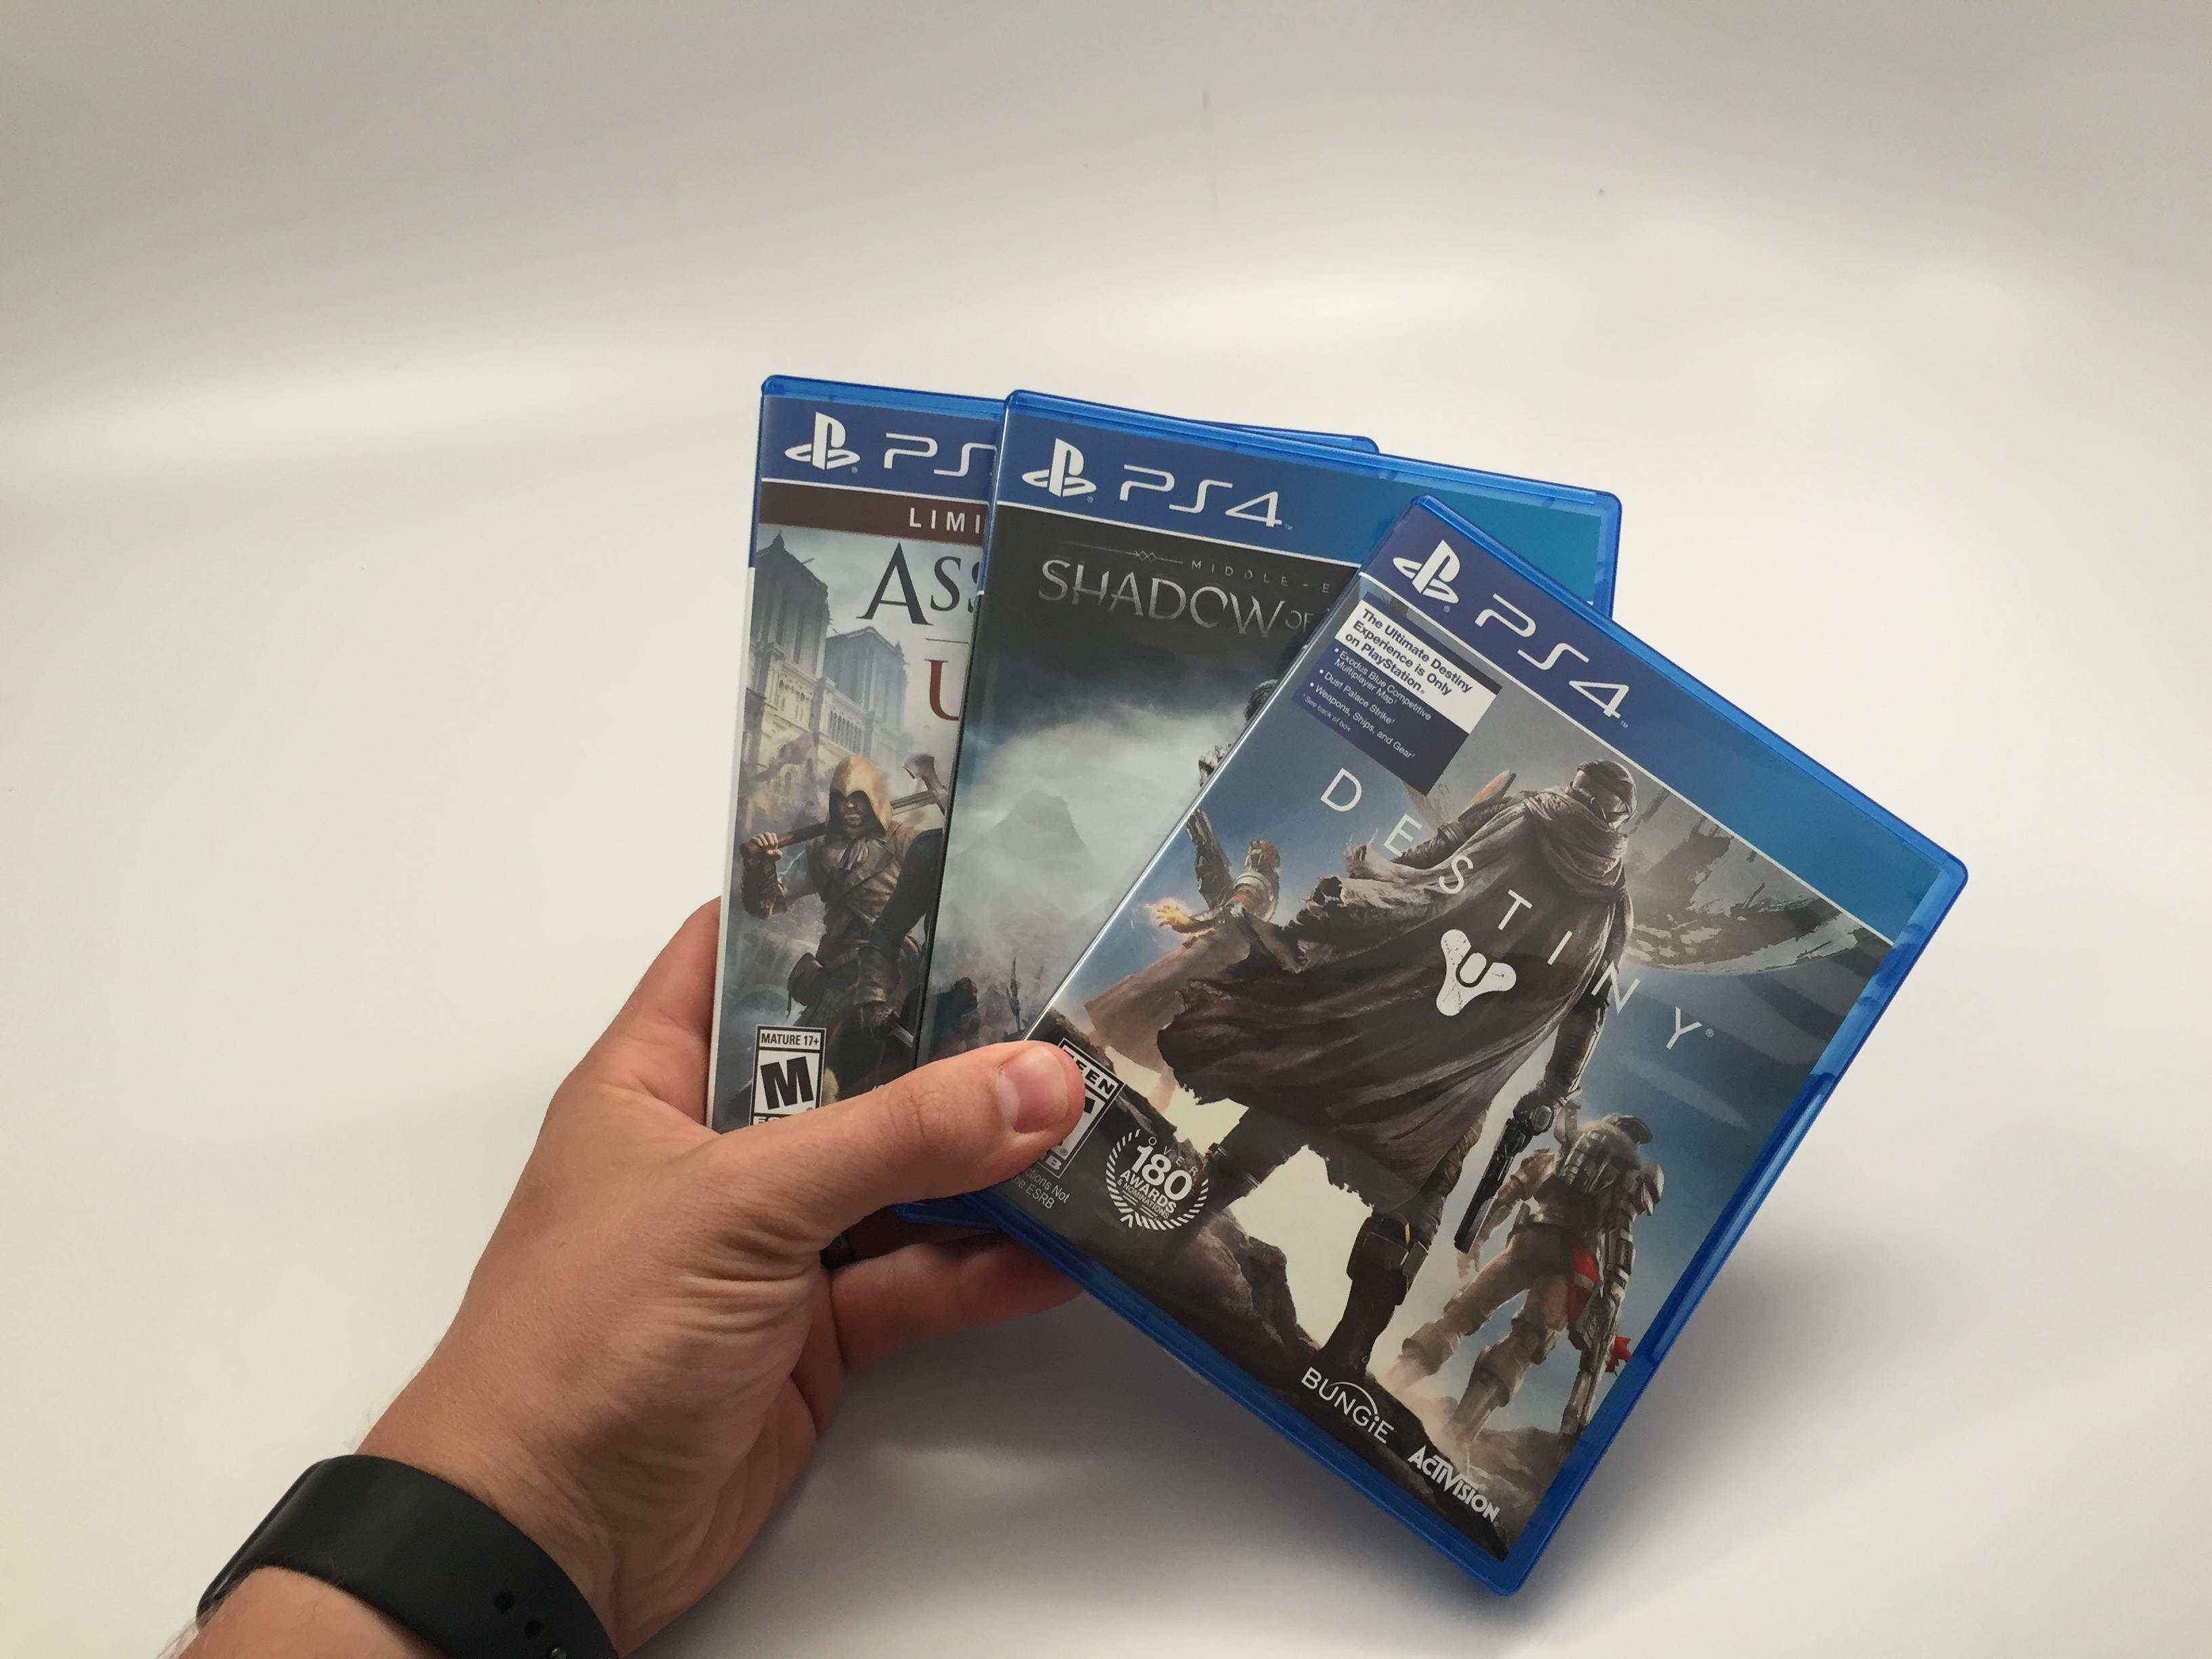 New Ps4 Games 2015 : Why youll love ps g